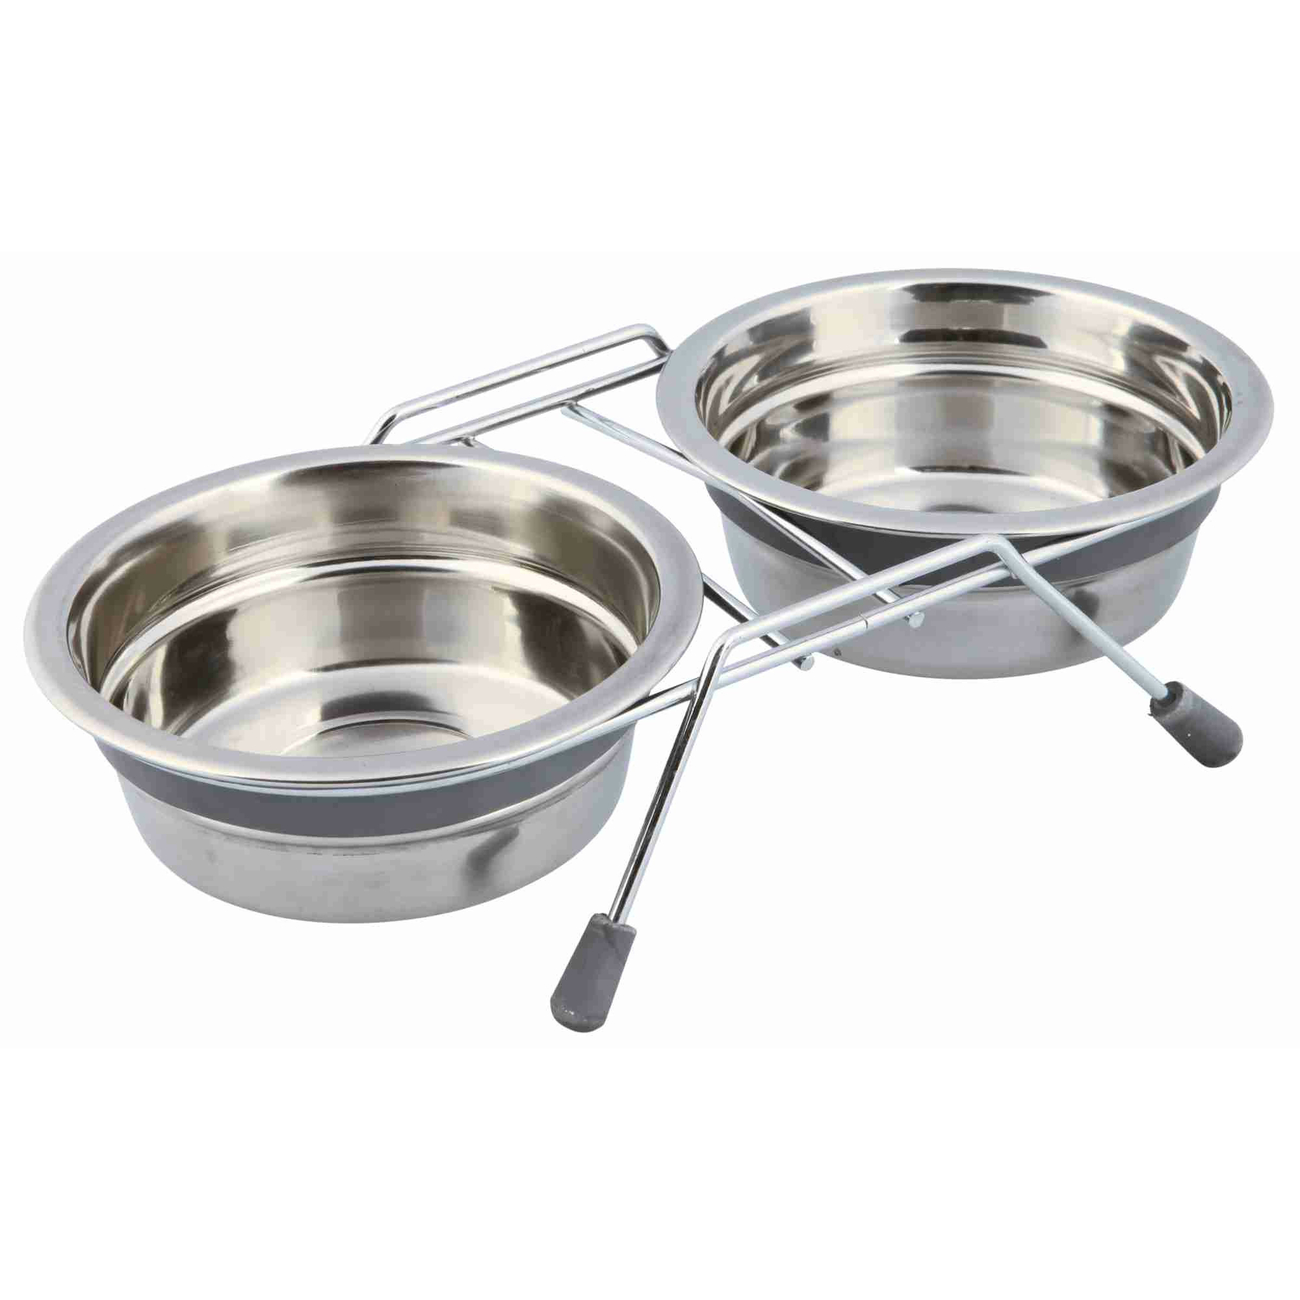 Trixie Napf-Set Eat on Feet mit Klapperschutz, 2 × 0,45 l/ø 13 cm